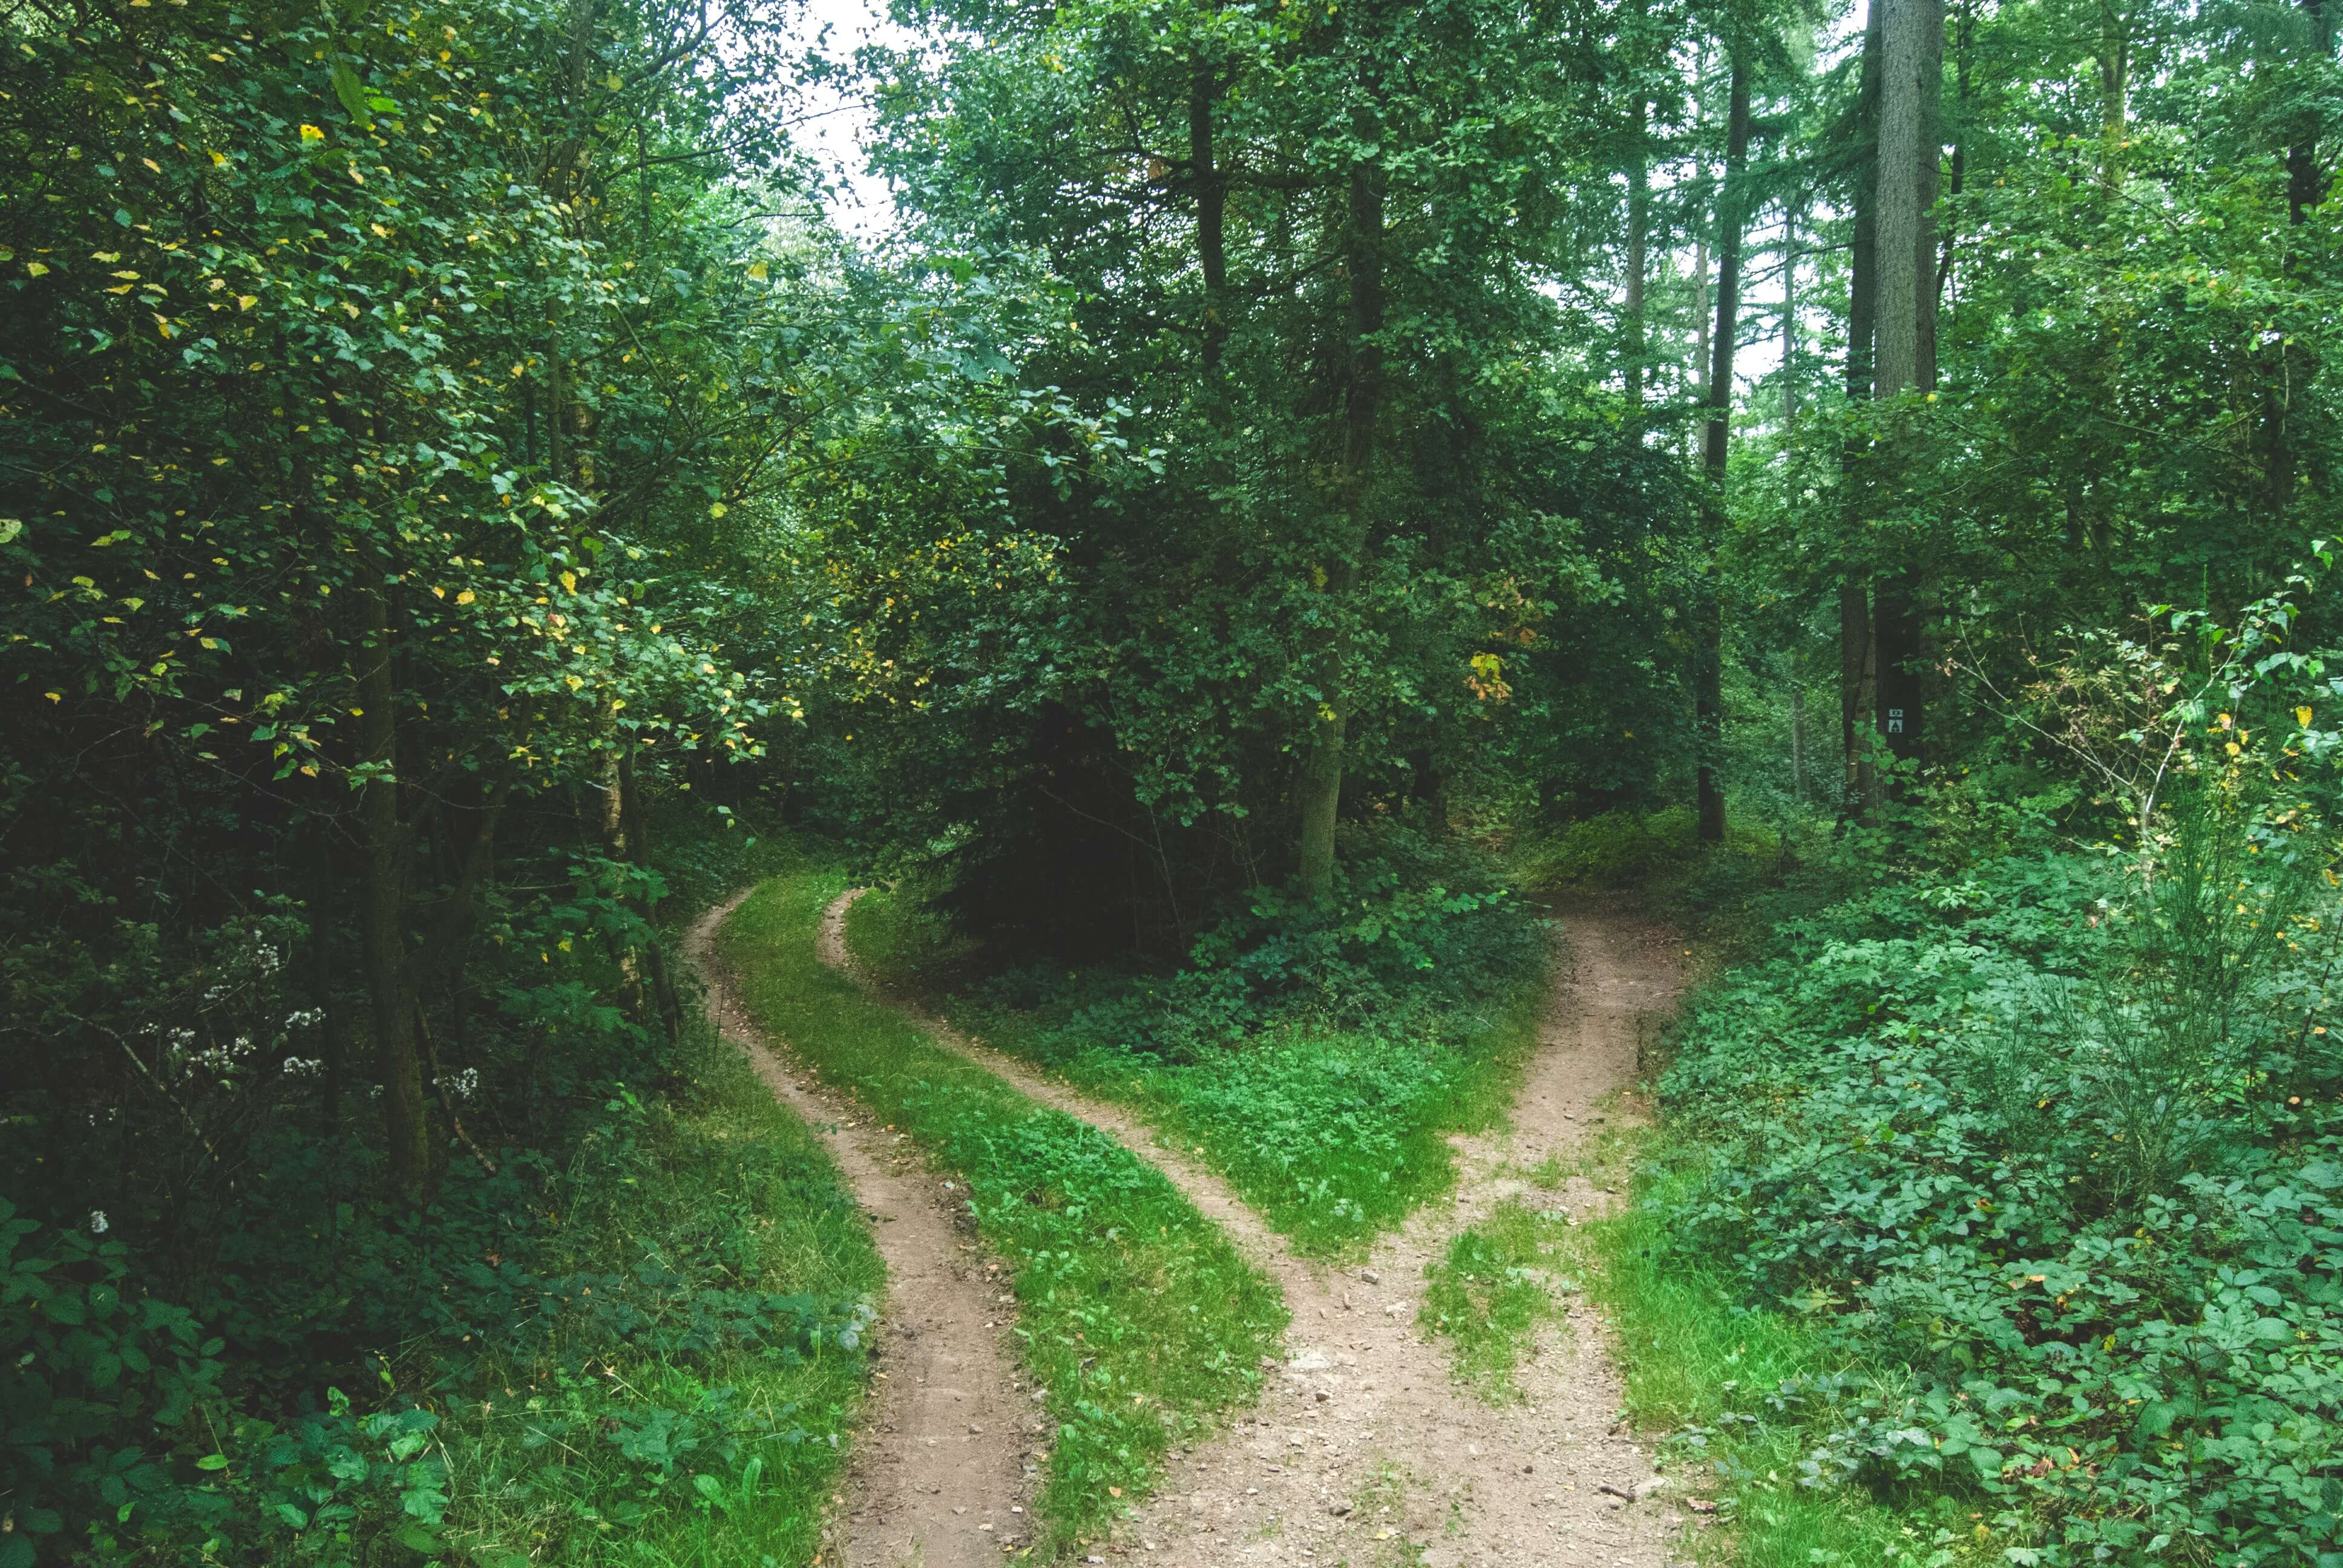 Diverging paths in the woods